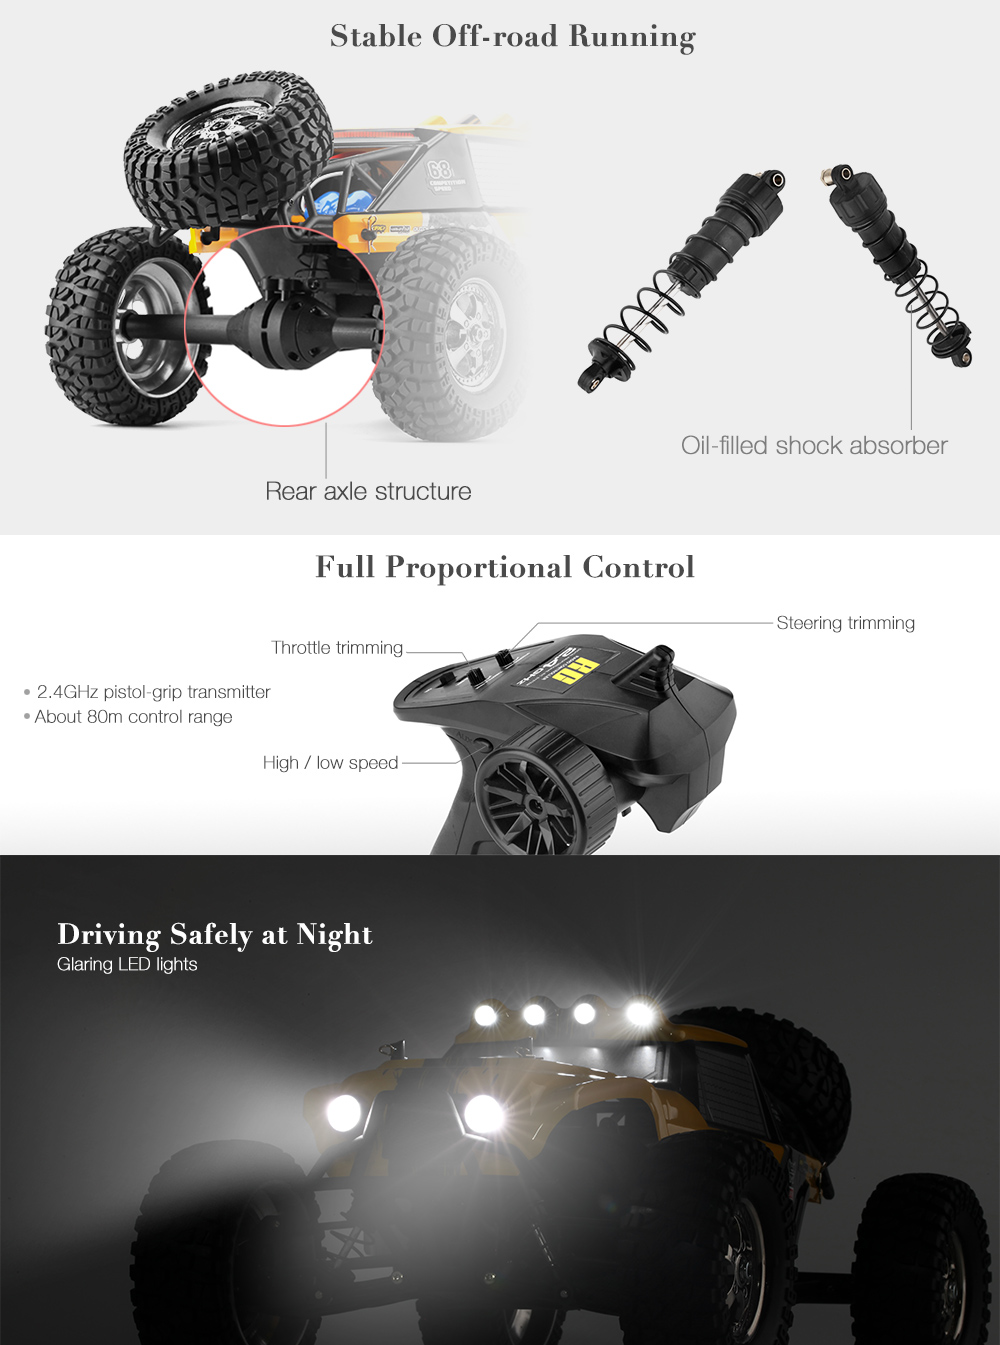 HBX 12889 Thruster 1:12 RC Off-road Truck RTR High Low Speed / 2.4GHz 4WD / Dual Servos